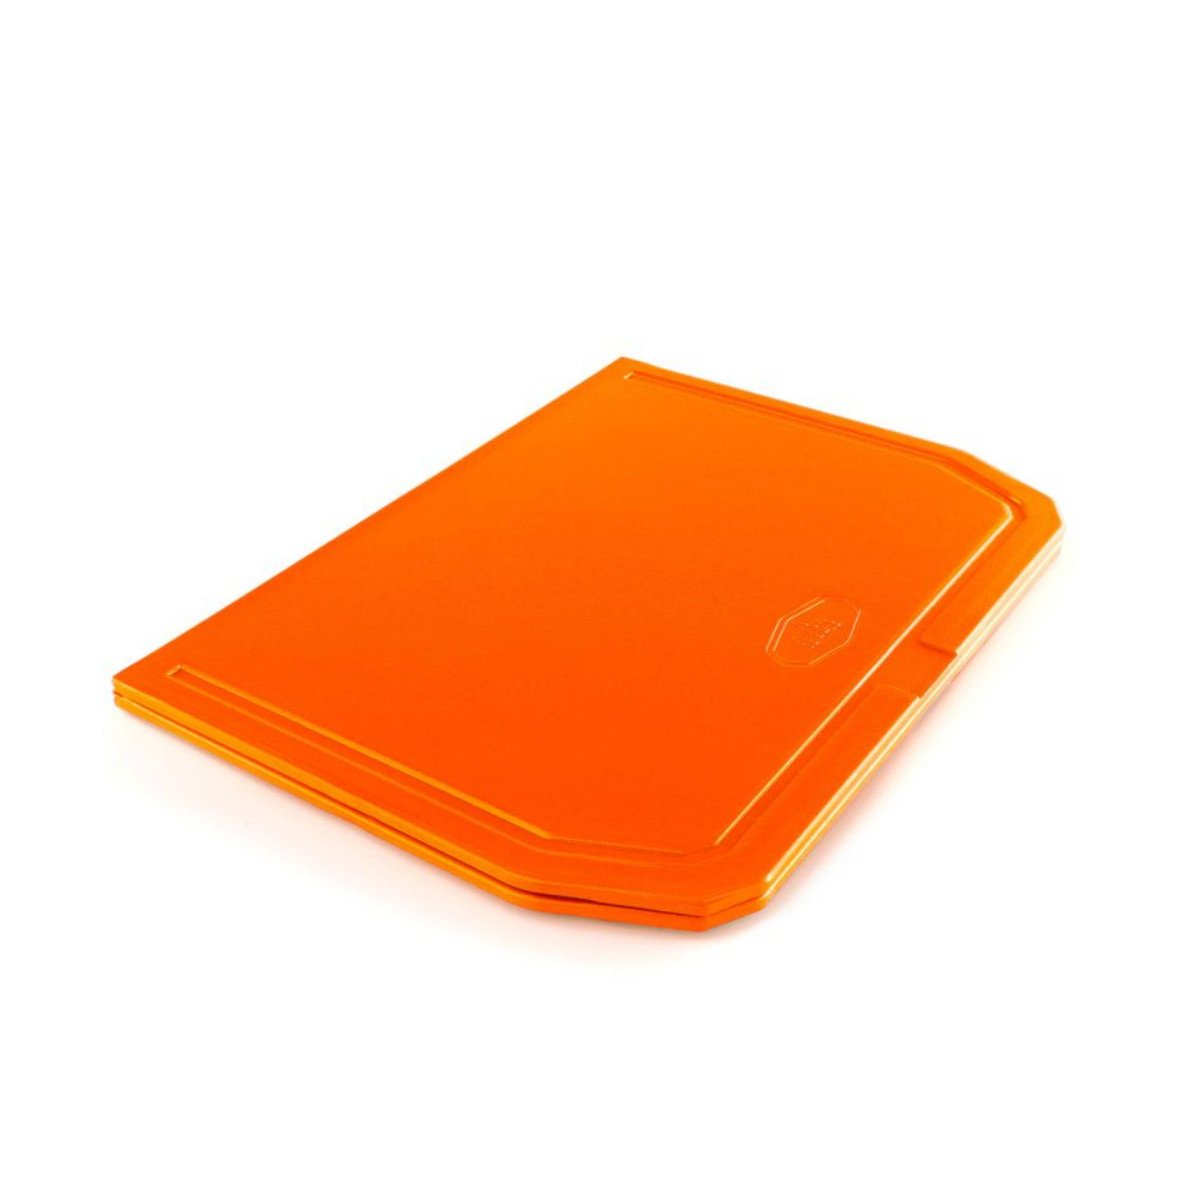 GSI Folding Cutting Board in Orange folded